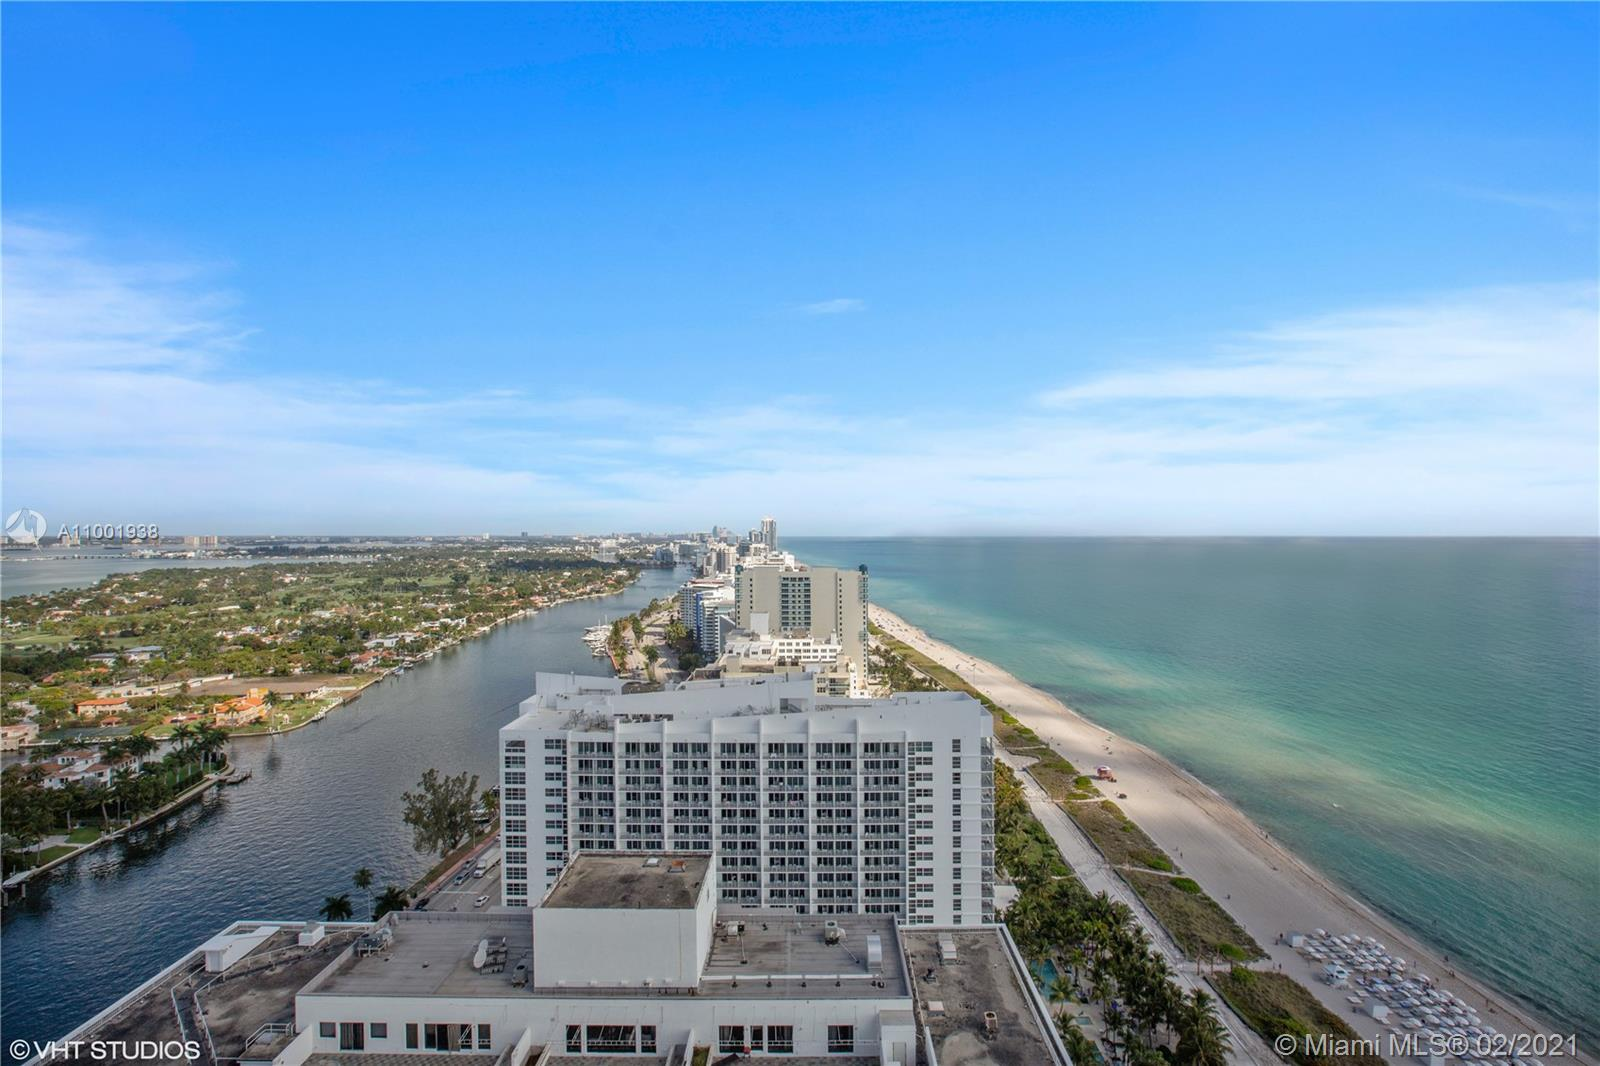 Enjoy stunning unobstructed ocean and bay views from this 34th floor apartment. This beautiful 2 bedrooms/2 baths apartment features: 1,490 sq.ft, living/dining, large balcony w/ access from the bedrooms and living room, kitchen w/ granite countertops, wood & tile floors, floor to ceiling glass windows, master bedroom w/ a walk-in closet, spacious master bathroom with jacuzzi tub and his/hers sinks, washer/dryer, and more. One assigned parking space is included. Building offers 1st class amenities: 24hr security, valet, concierge, tennis court, pool/hot tubs, café/market w/ room service, 16,000 sf clubhouse/spa, gym, personal trainers, party room, children's play room, billiards, business center, beach attendant and more.